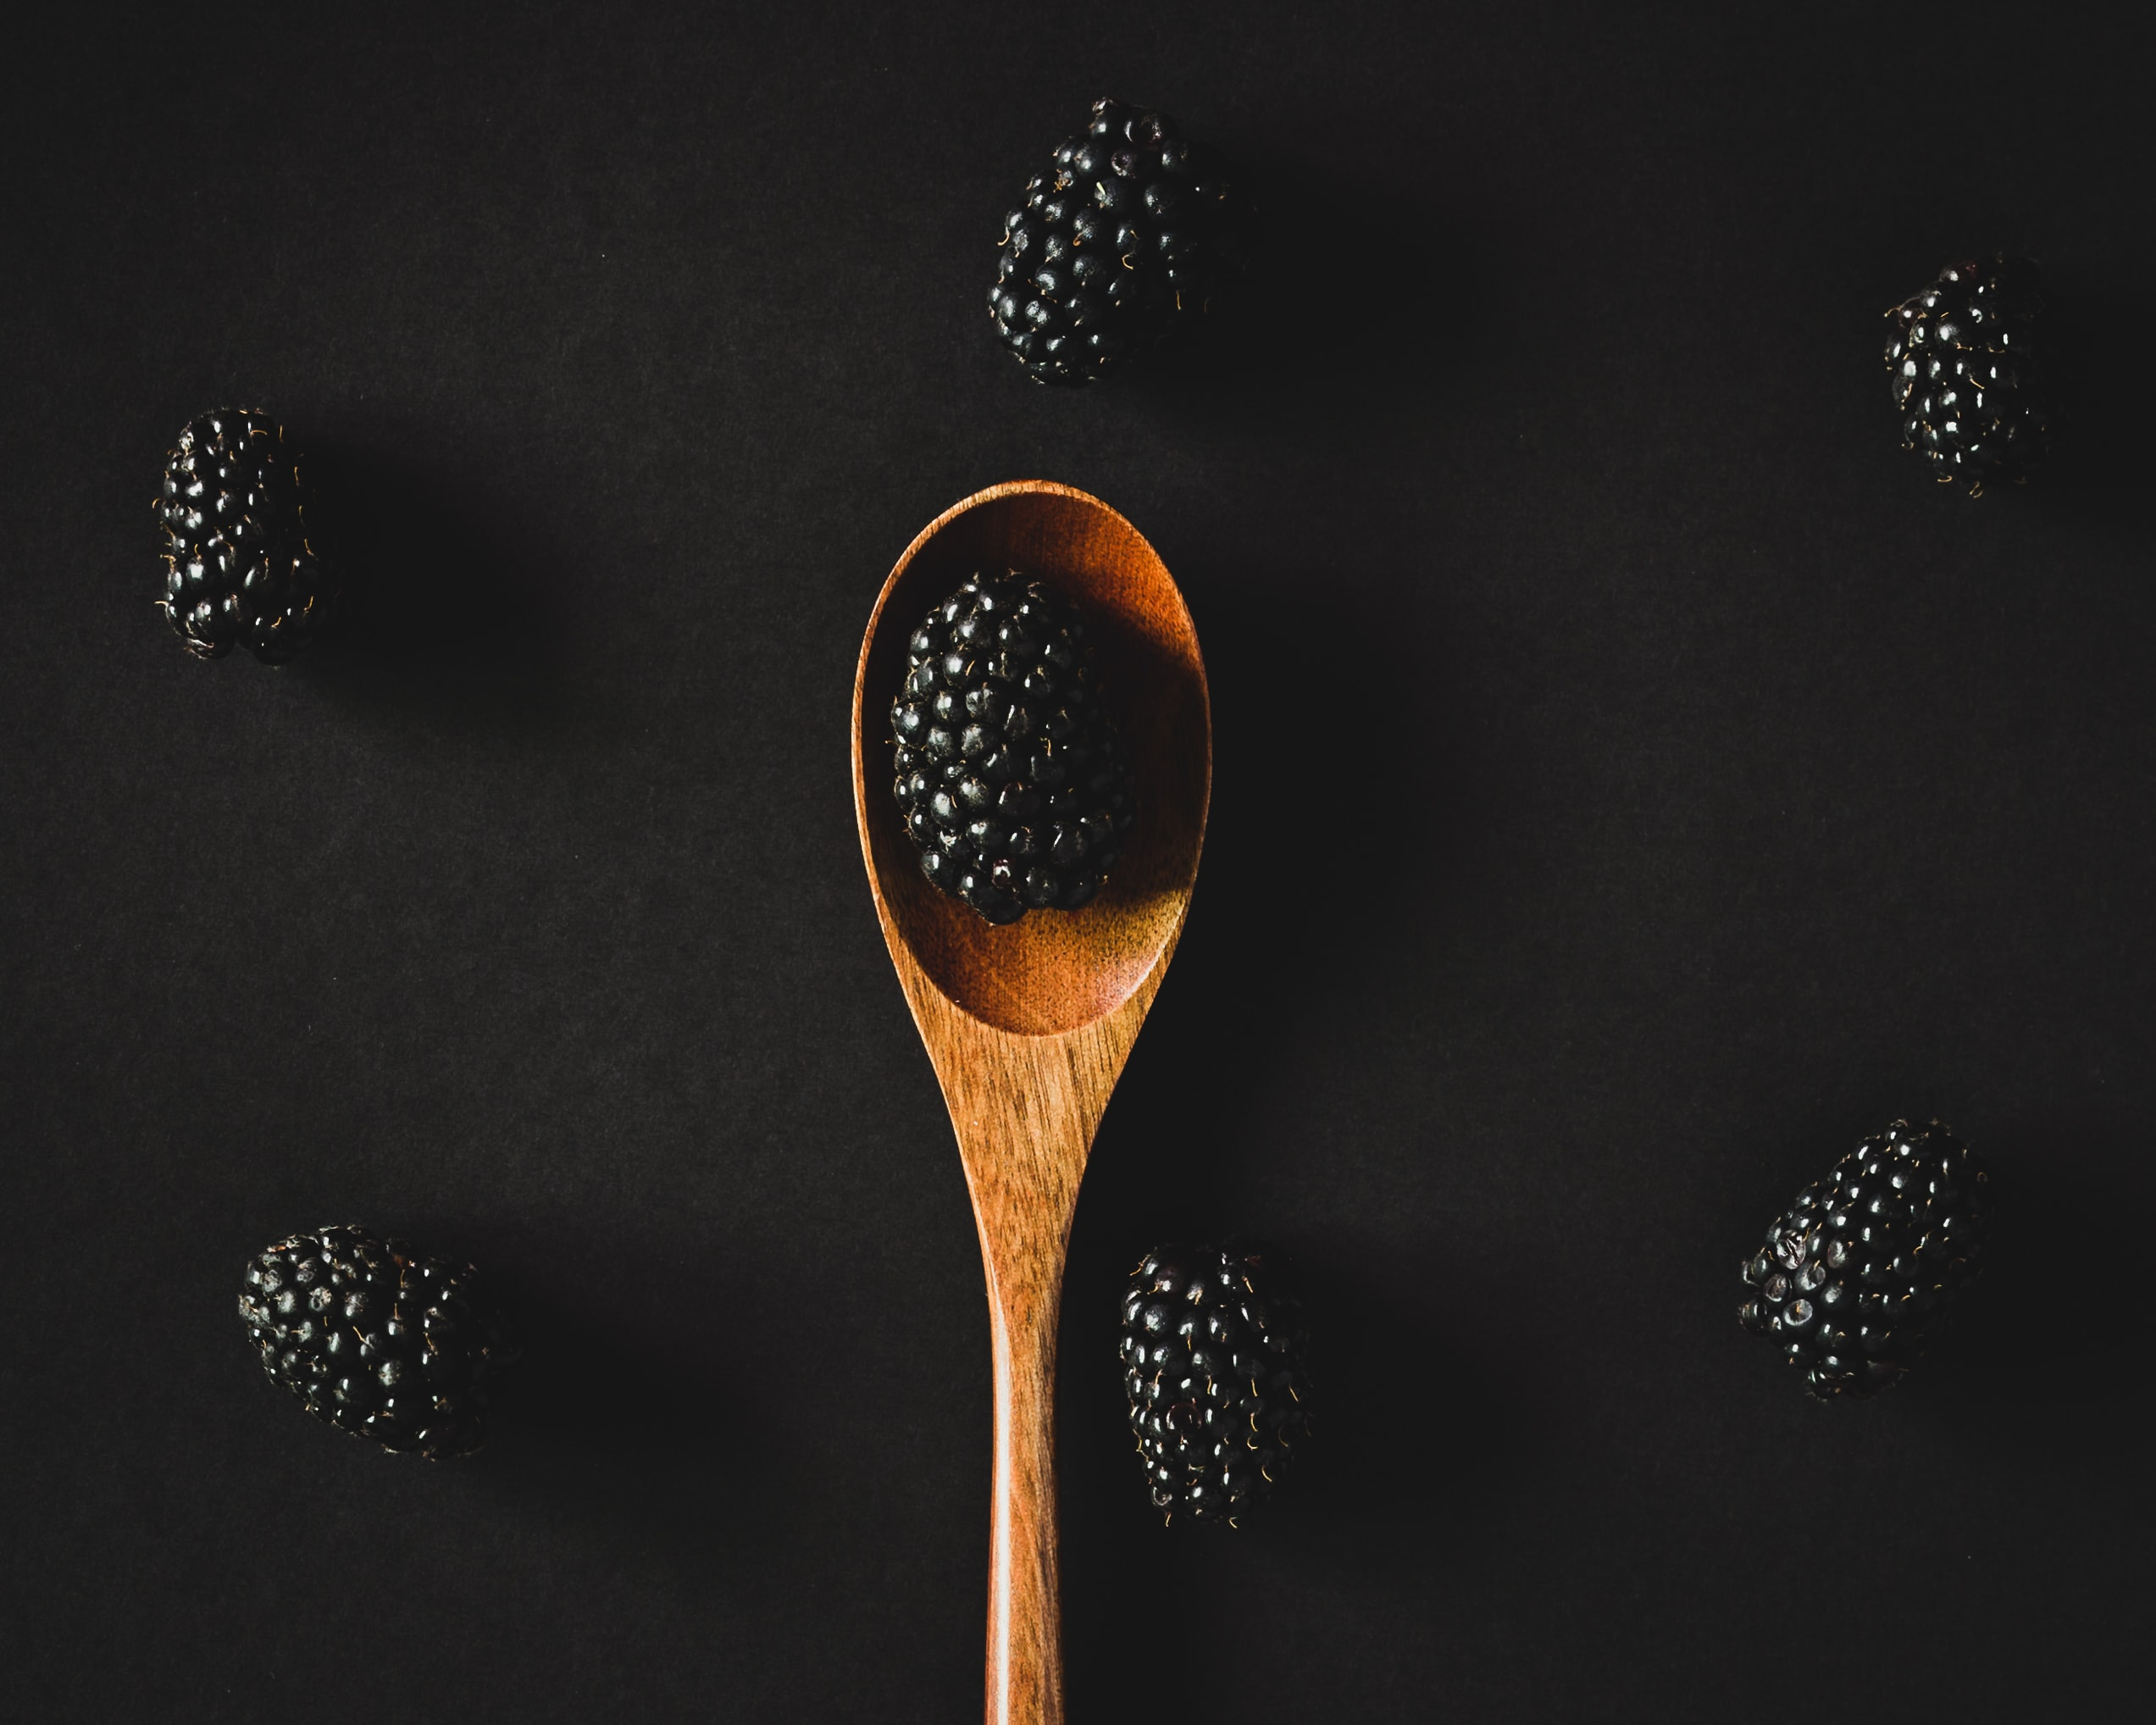 raspberry on the wooden spoon